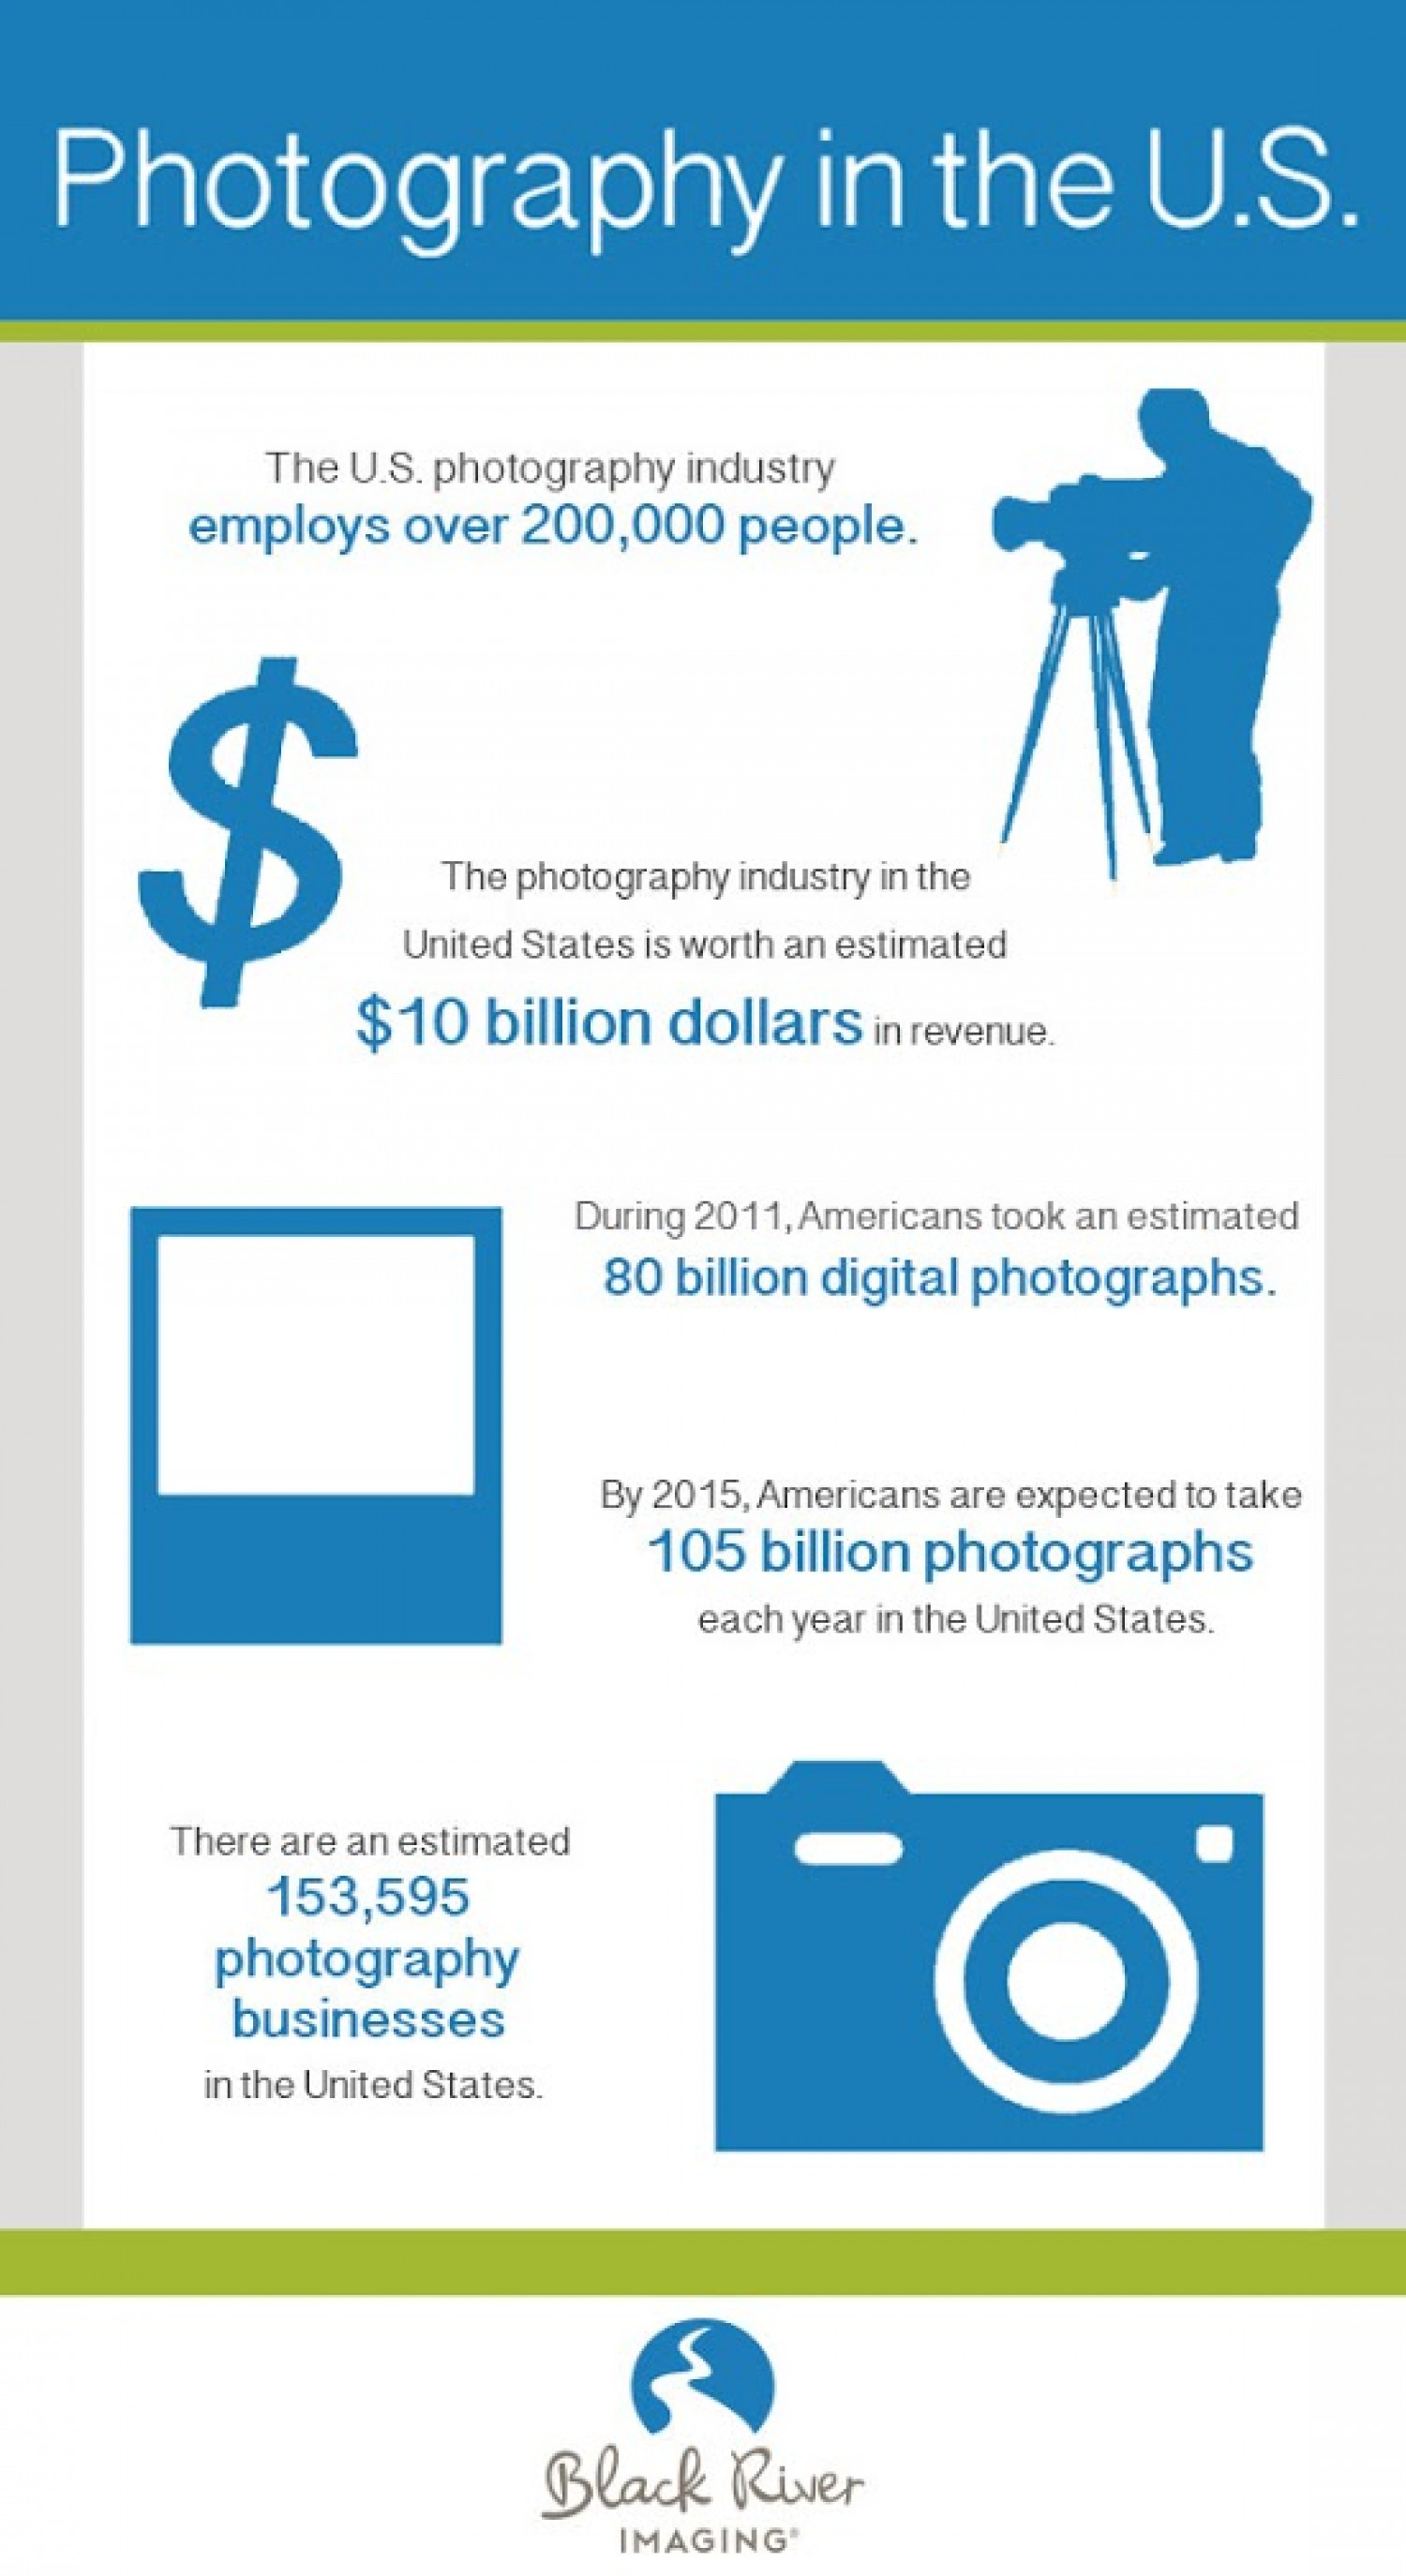 Photography in the U.S Infographic